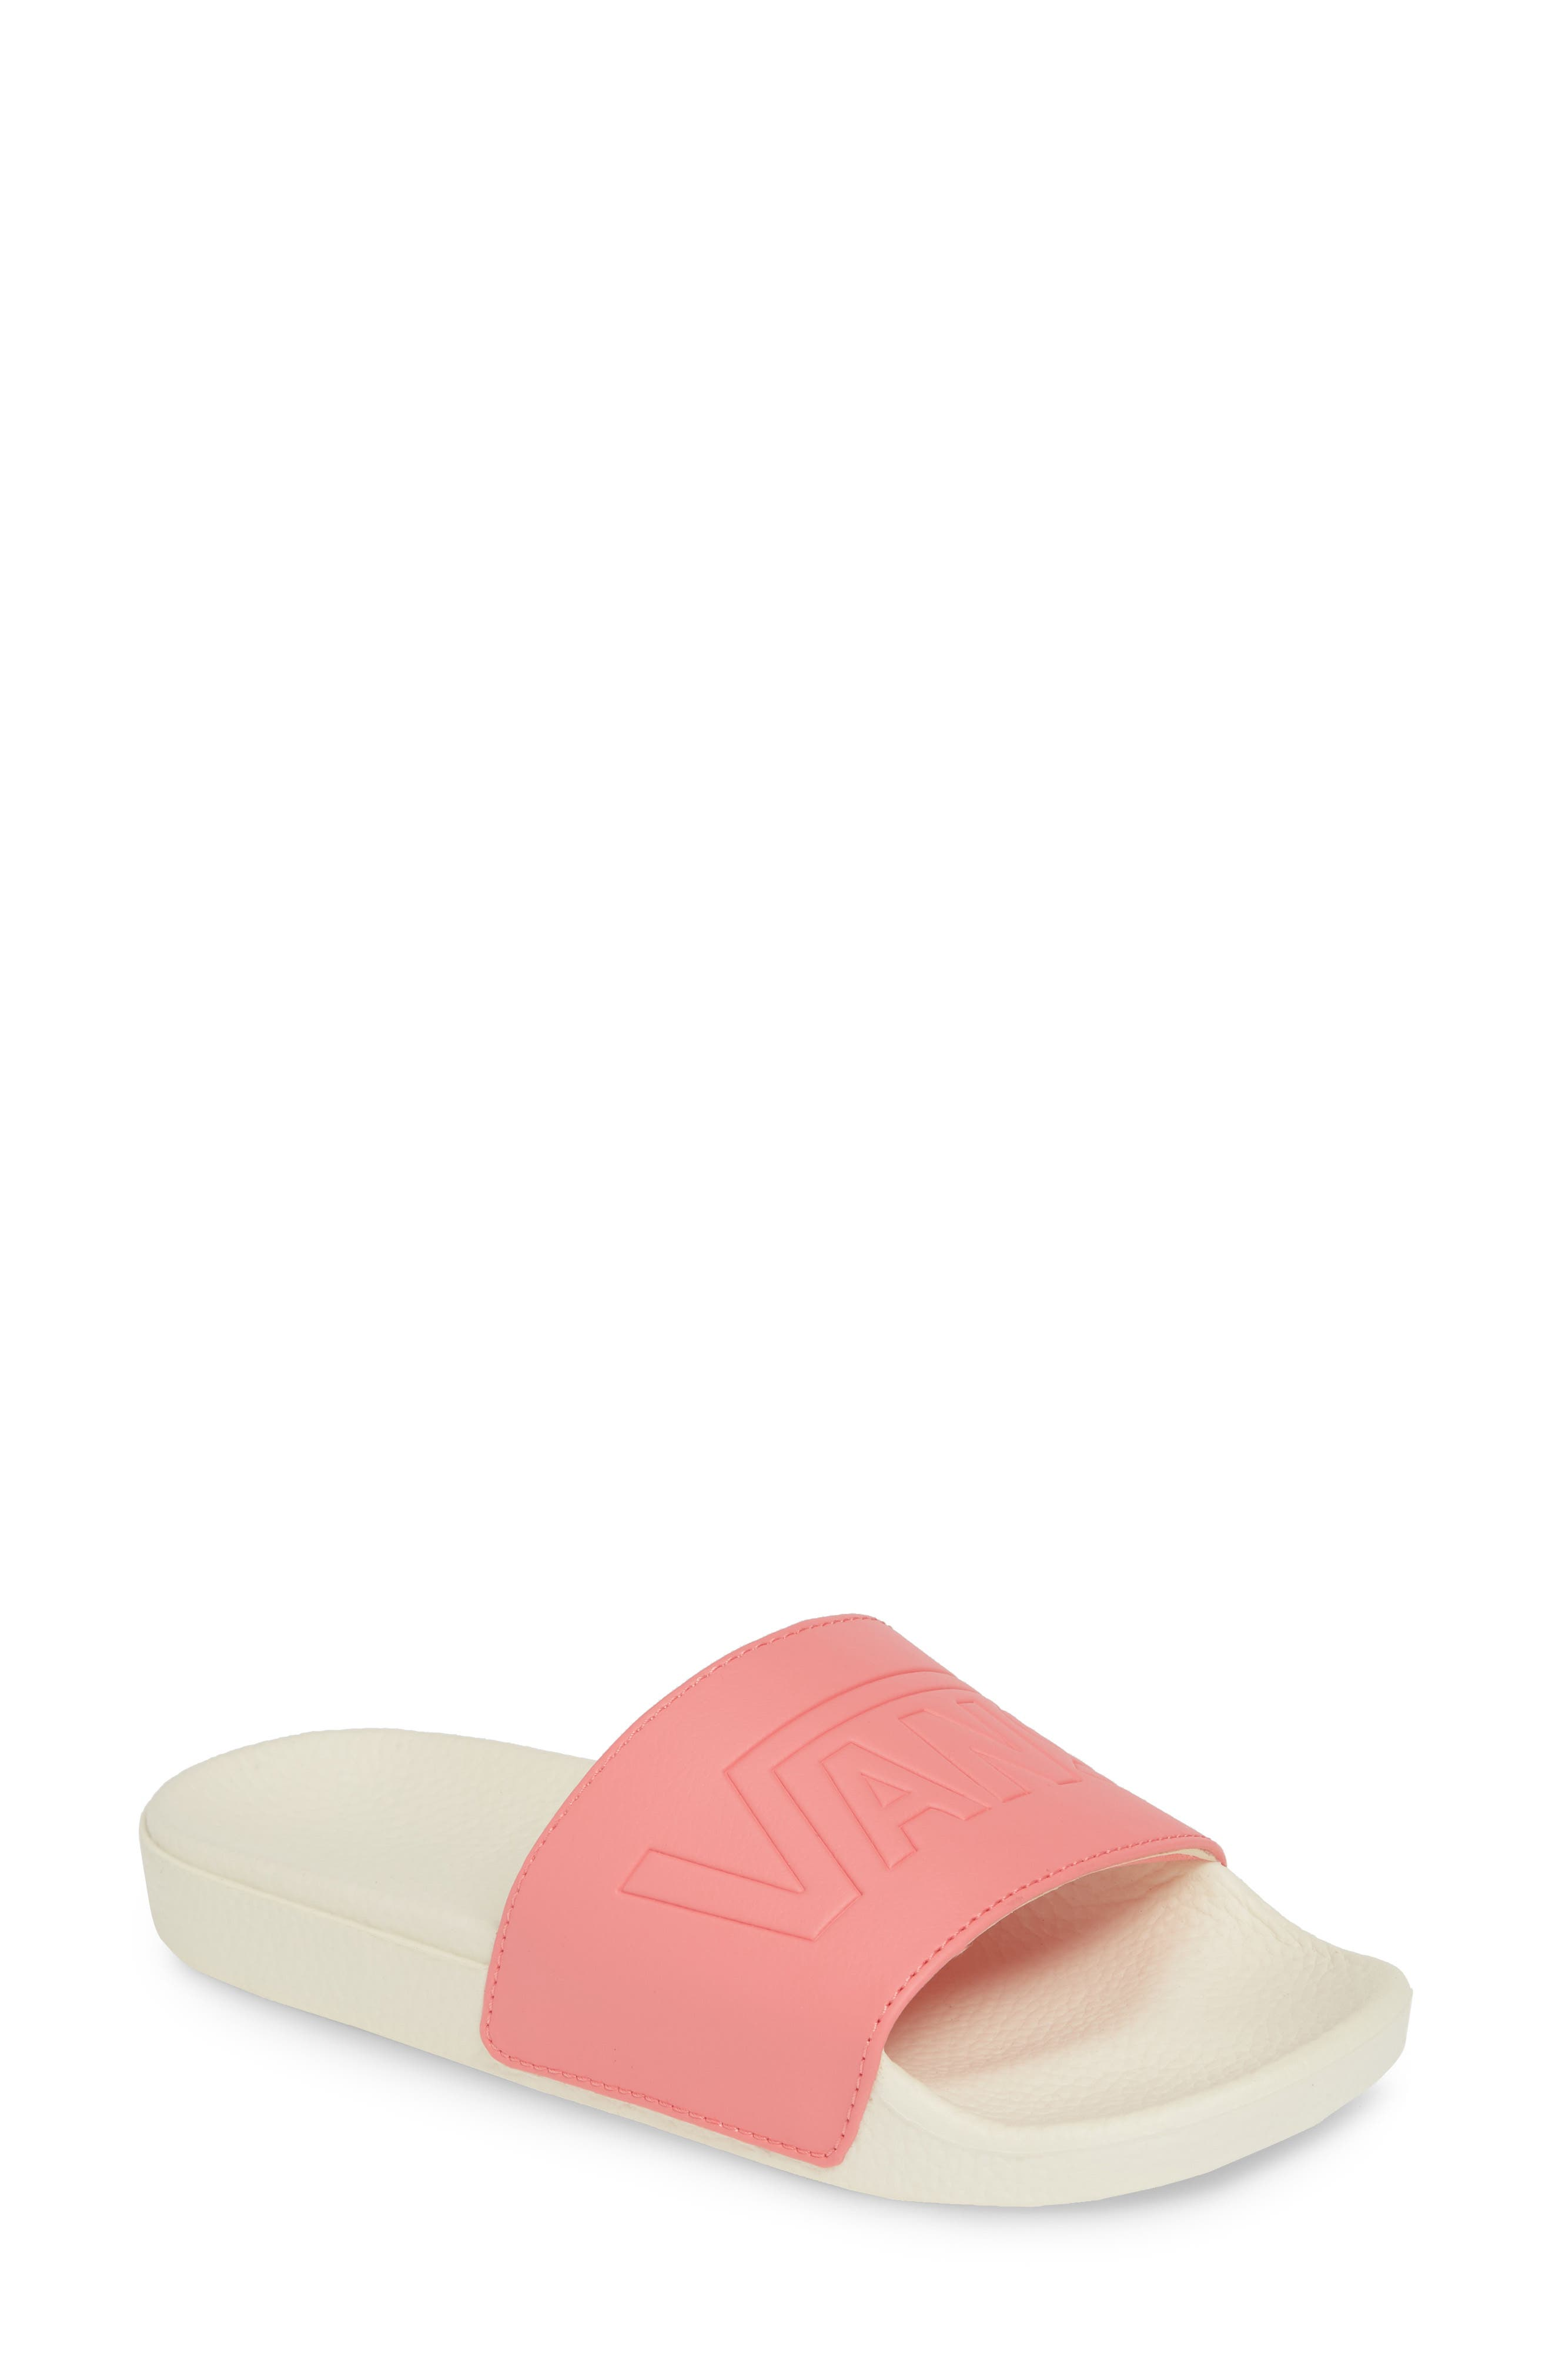 VANS Slide-On Sandal, Main, color, STRAWBERRY PINK